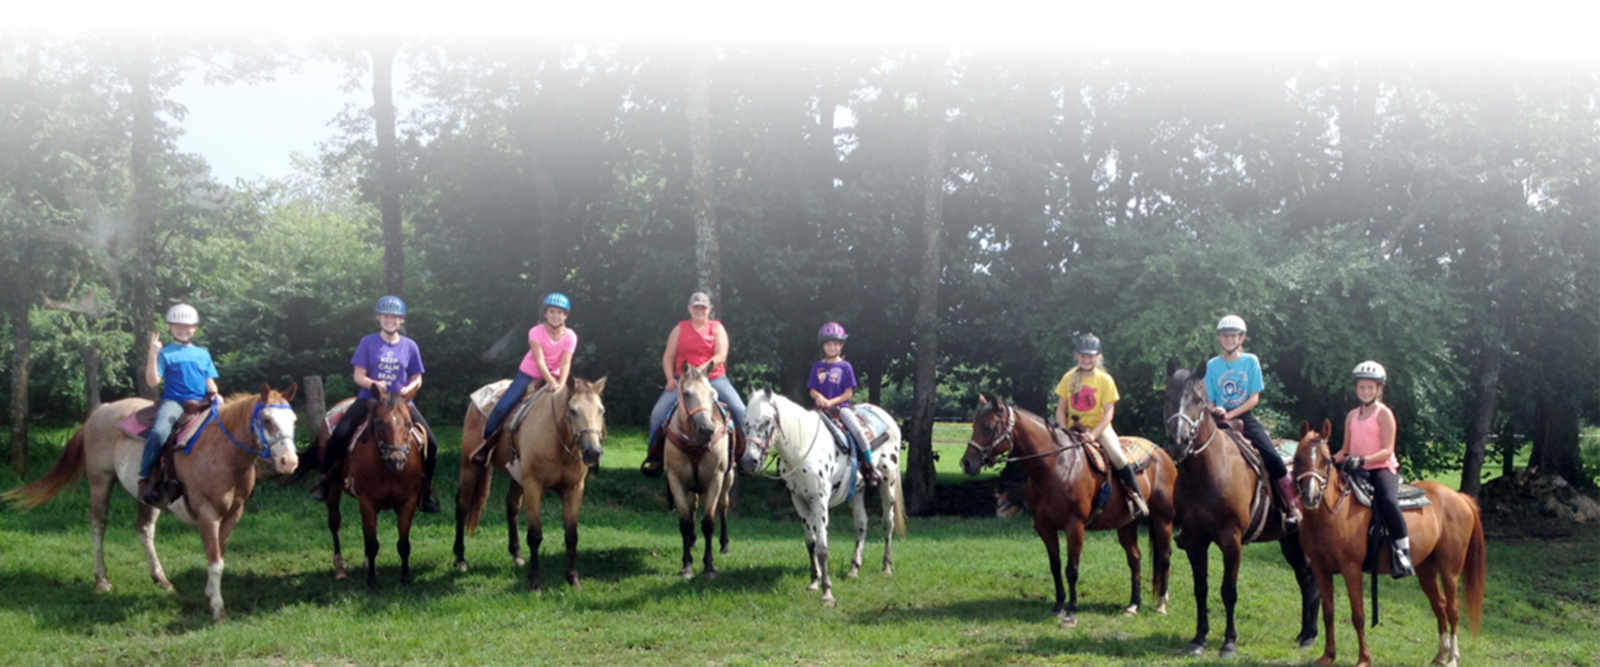 Beginner and expert equestrians alike will enjoy outdoor adventures with Monkey Island Trail Rides at Royal Horse Ranch. Offering guided horseback riding, options are available for half-hour or hour-long rides. Trails wind through more than 100 acres of sunny pastures and shady woods along beautiful Grand Lake, making the perfect setting or a leisurely ride.